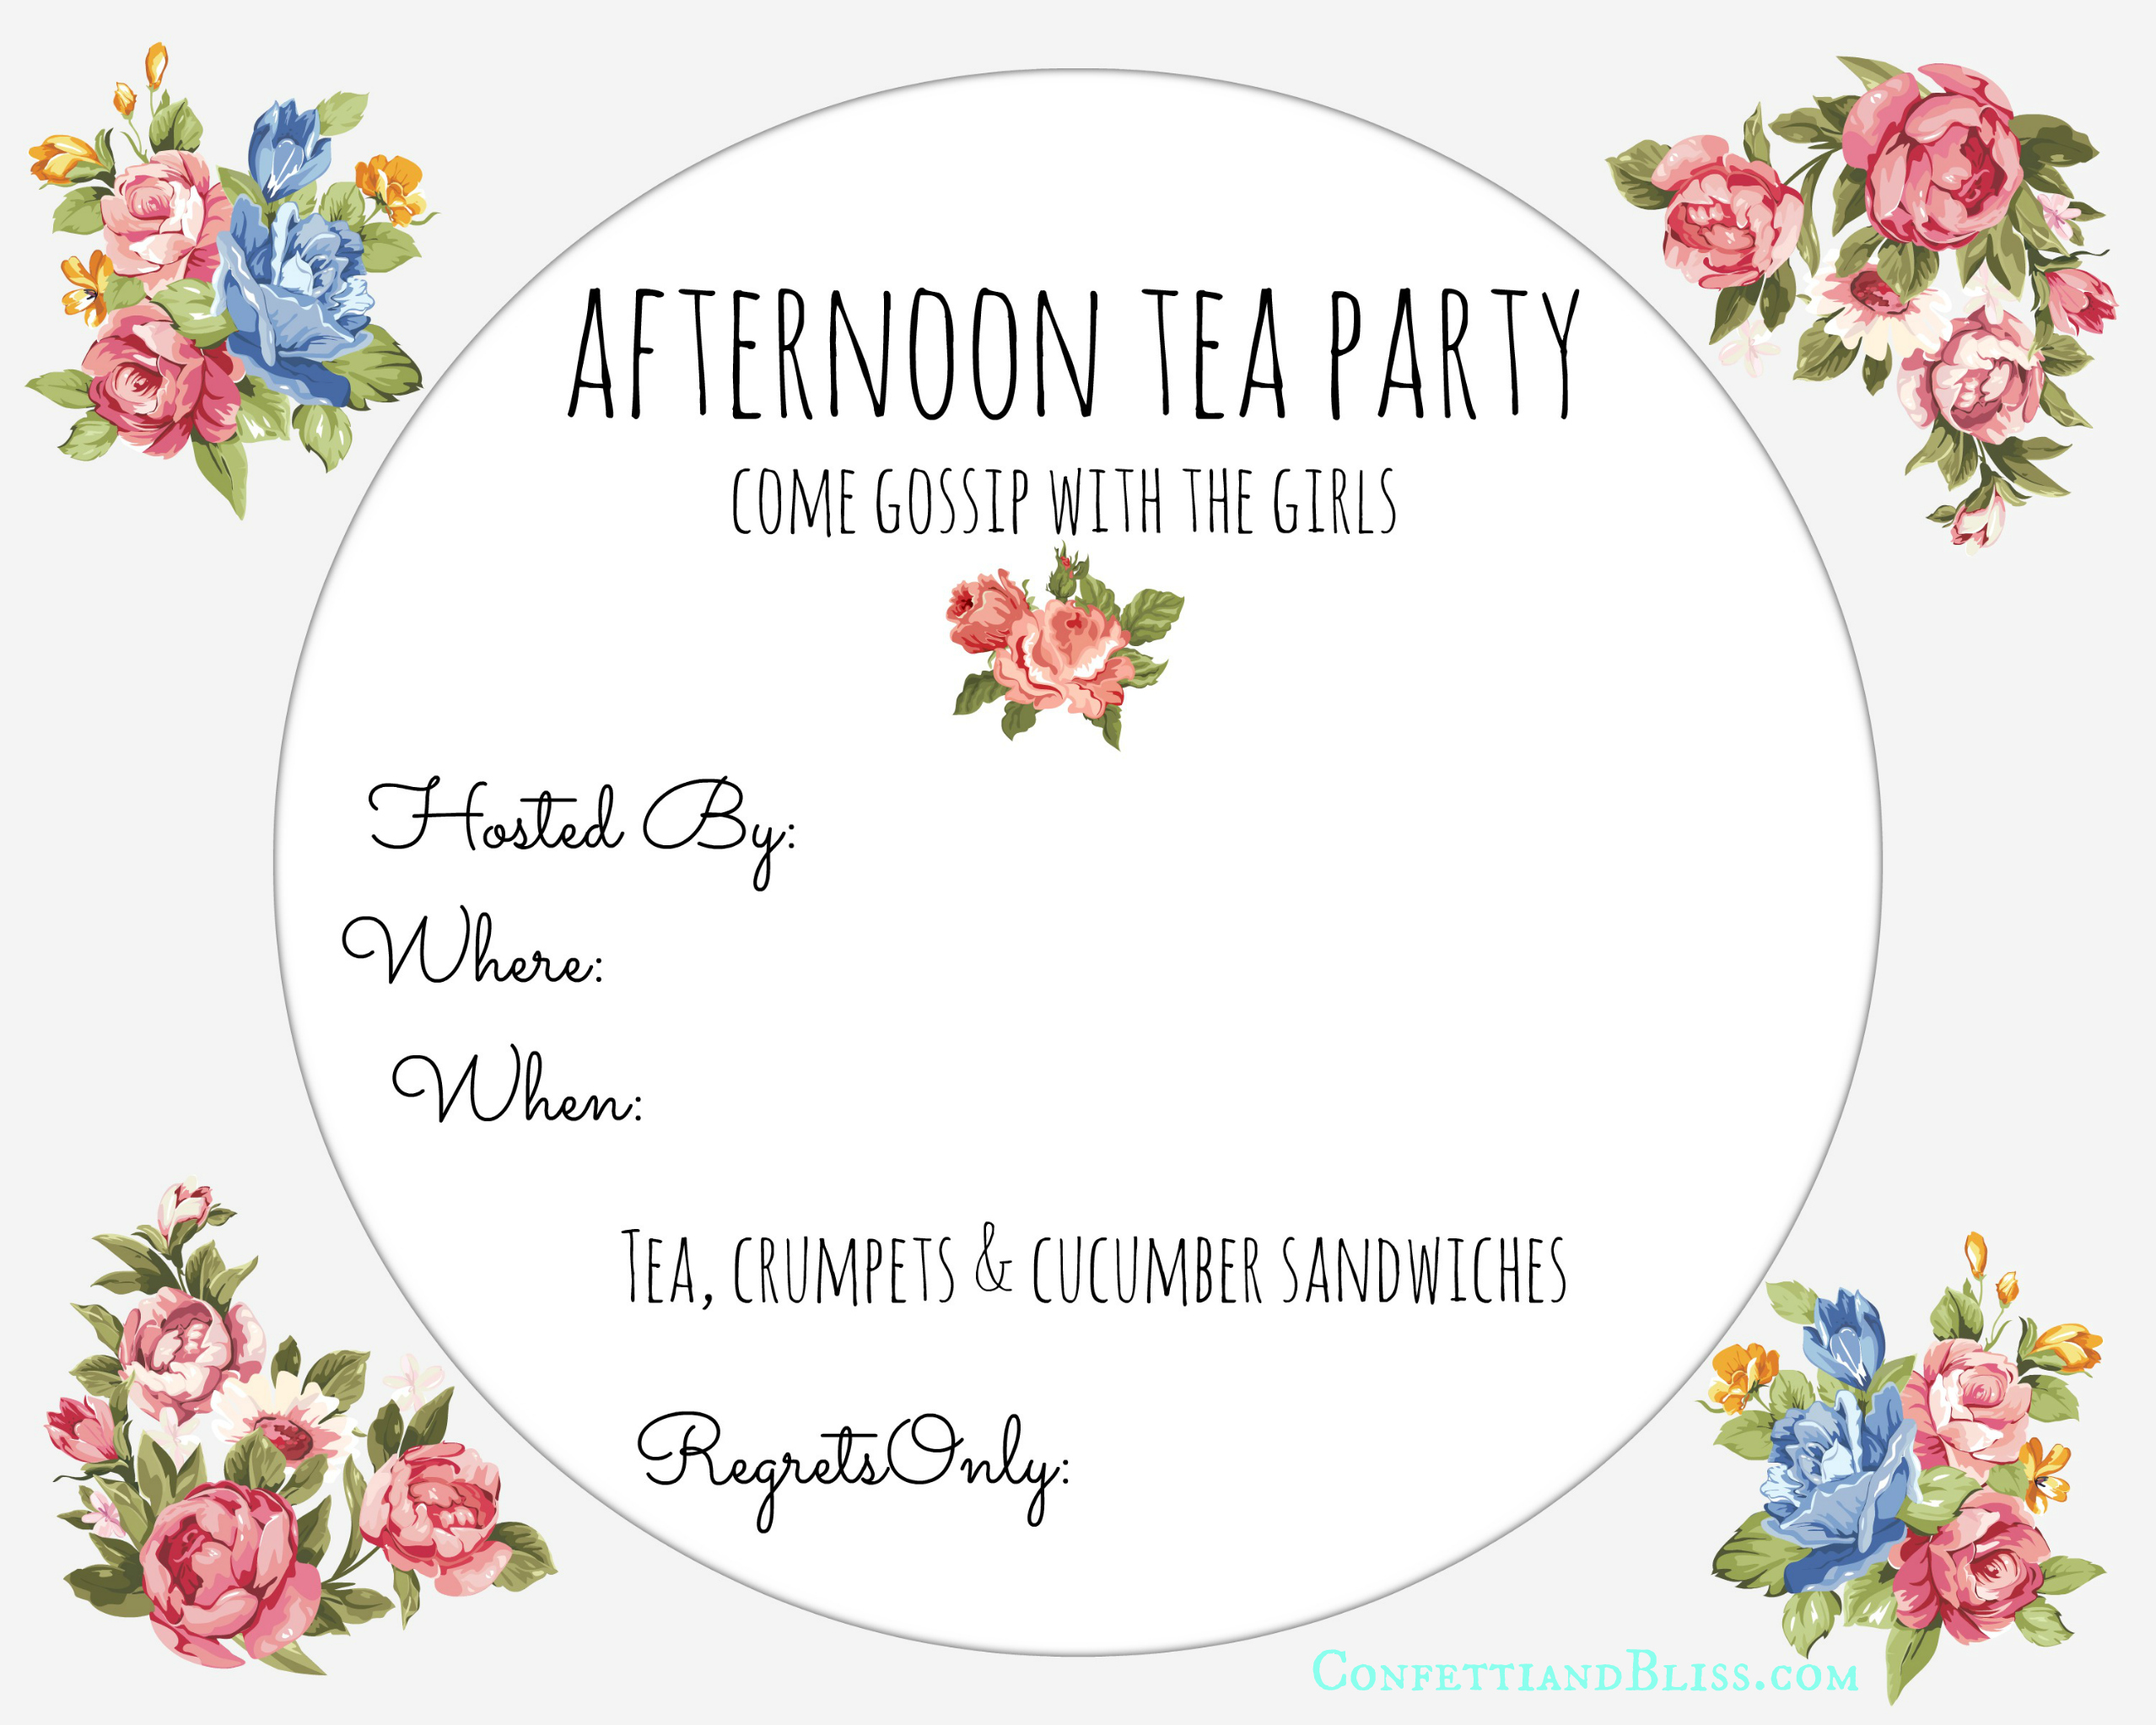 Bewitching image with regard to free printable tea party invitations